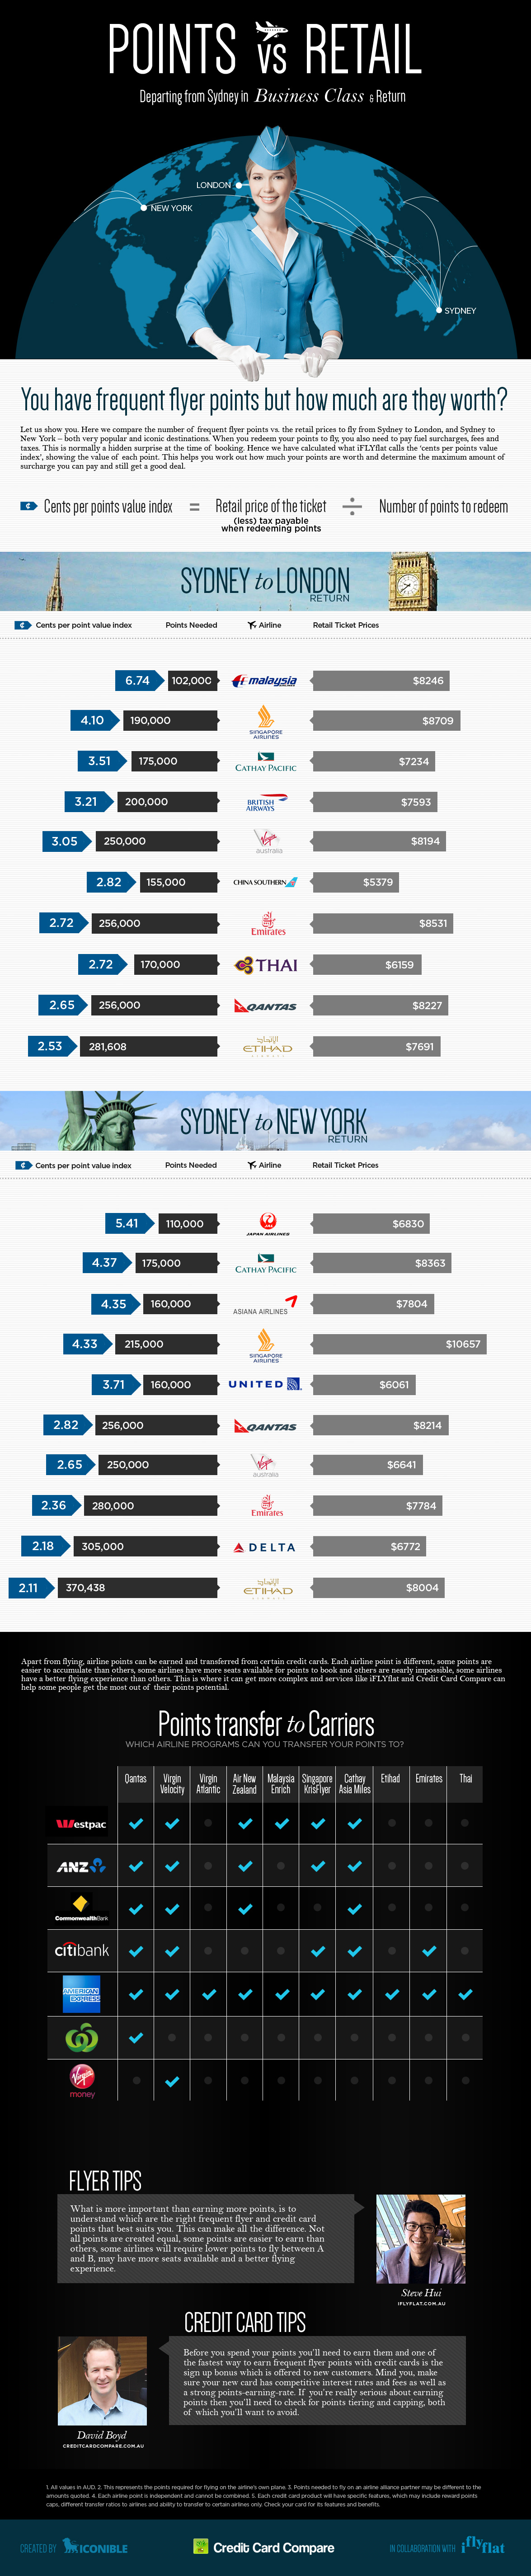 Frequent Flyer Points vs. Retail Price Analysis for SYD - LON / NYC